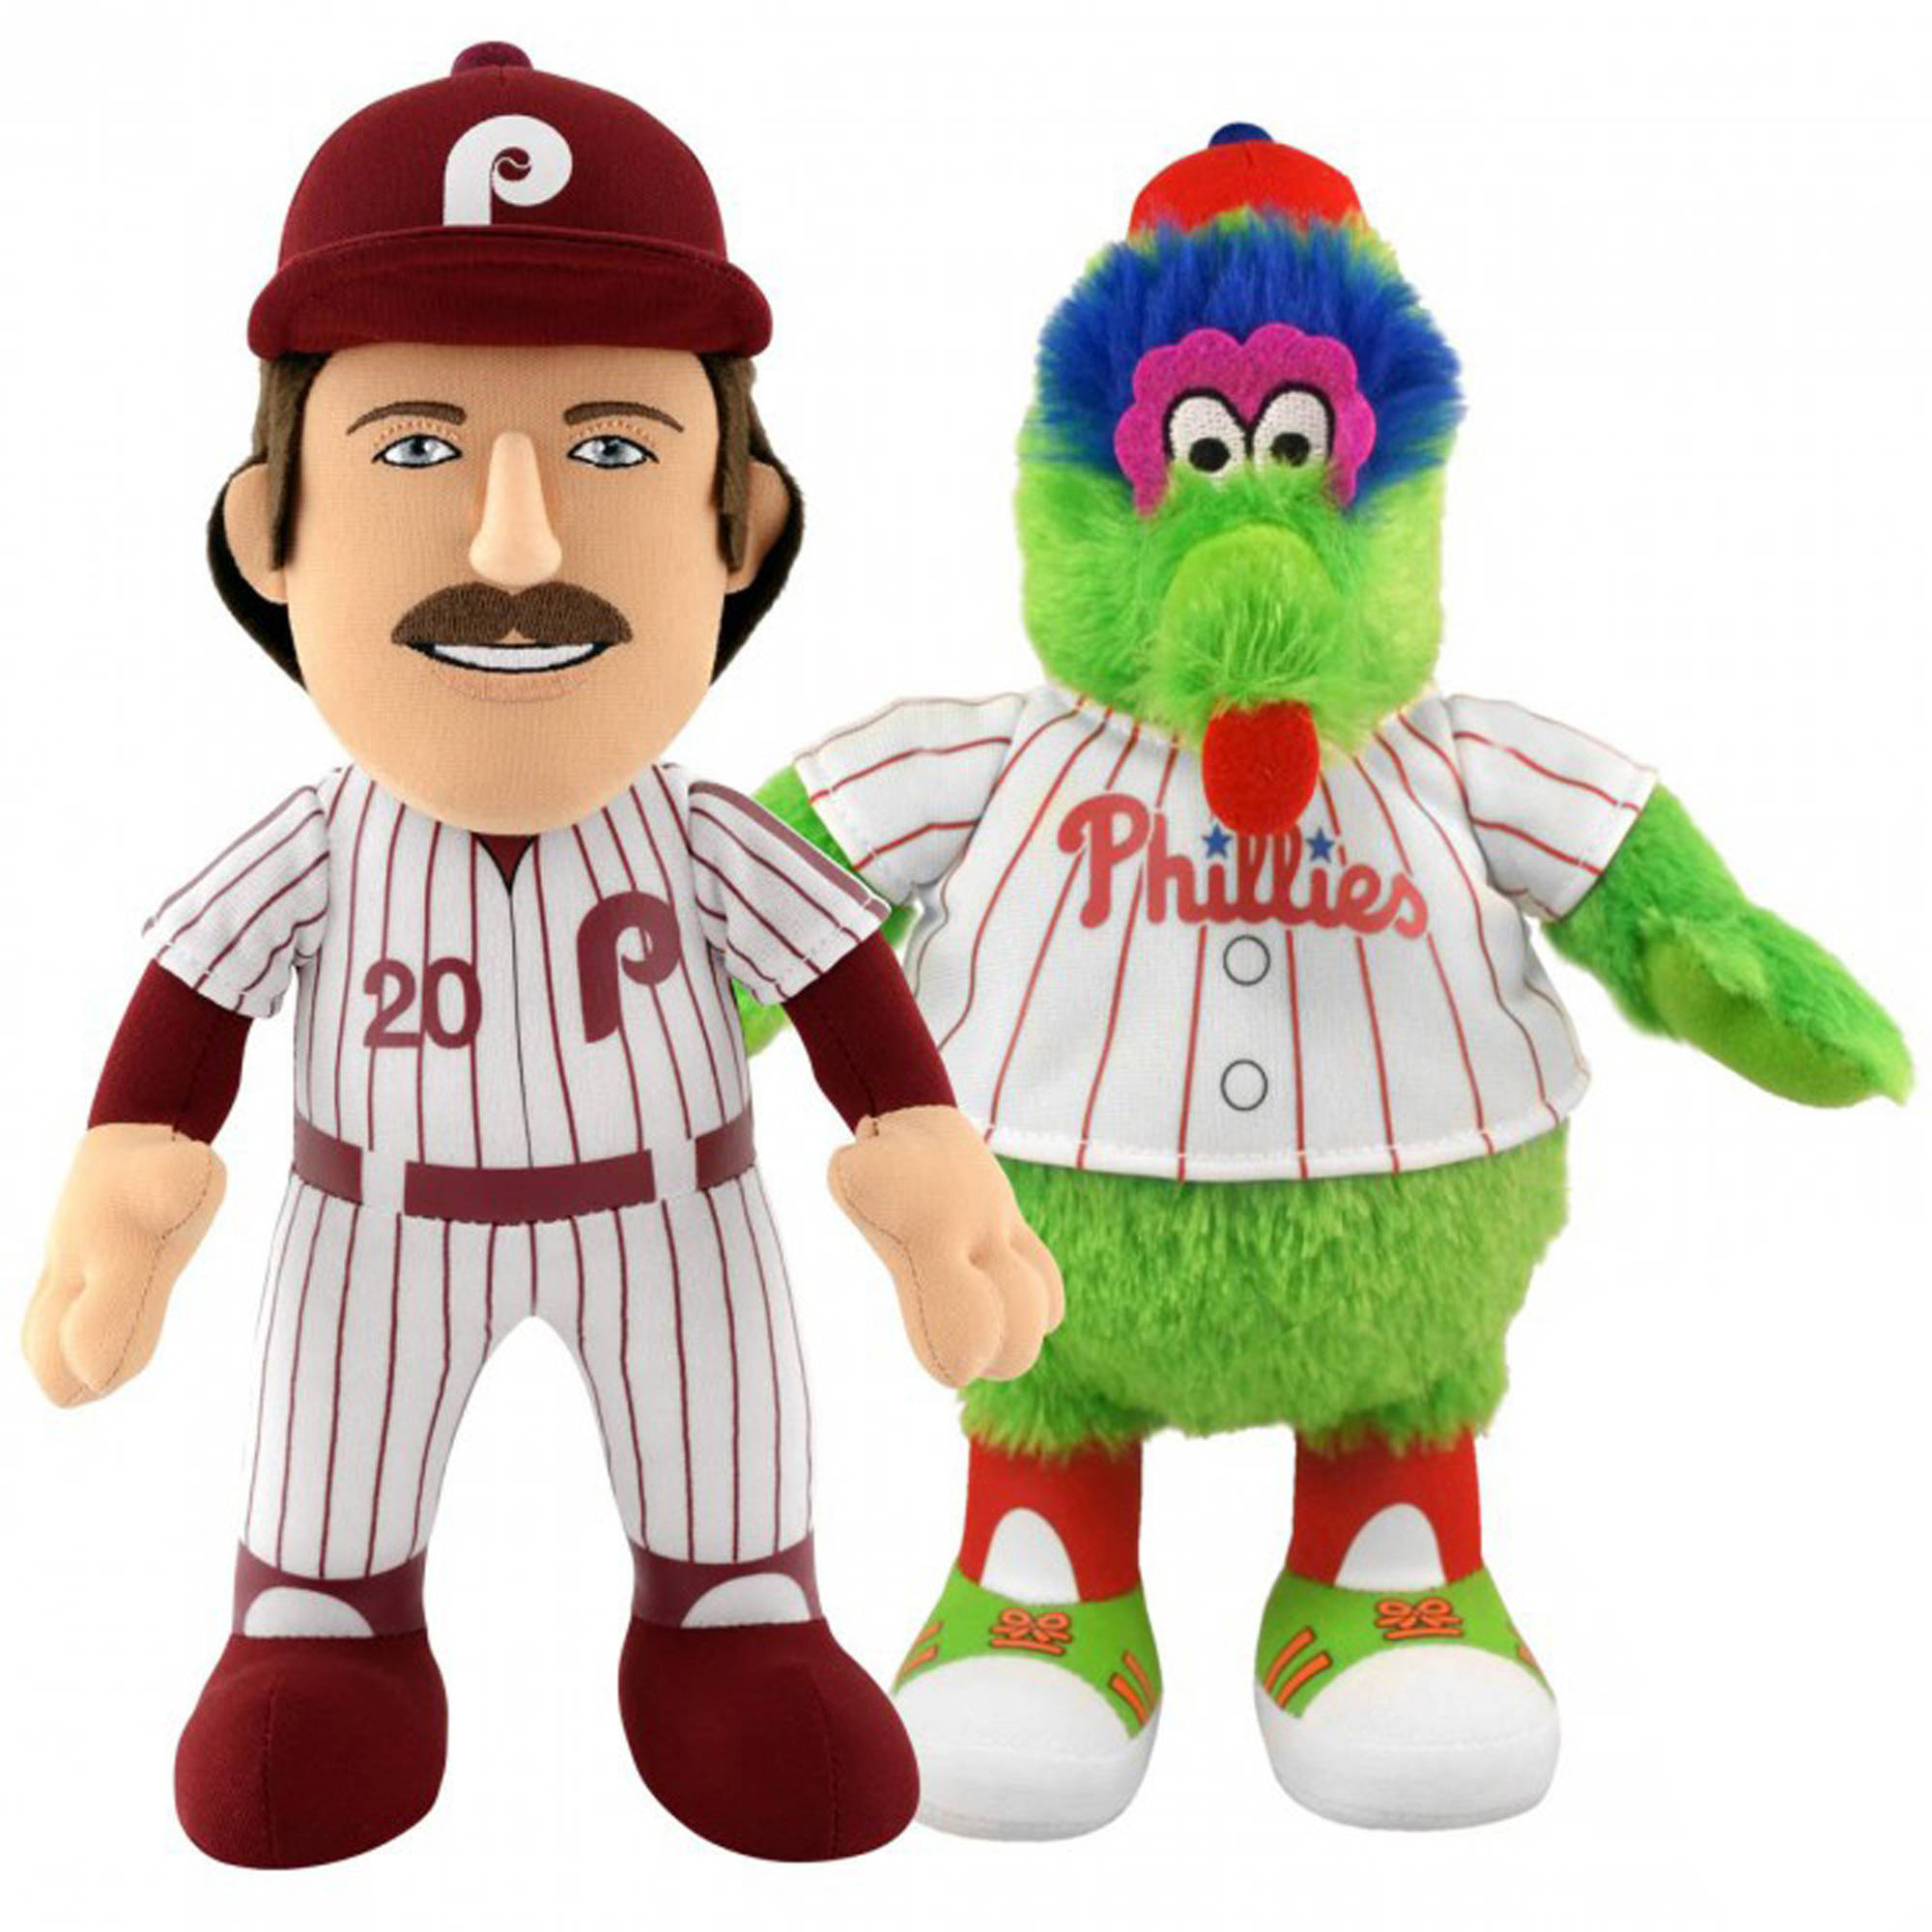 """Bleacher Creatures Dynamic Duo 10"""" Plush Figures, Phillies Mike Schmidt and Phanatic by Generic"""